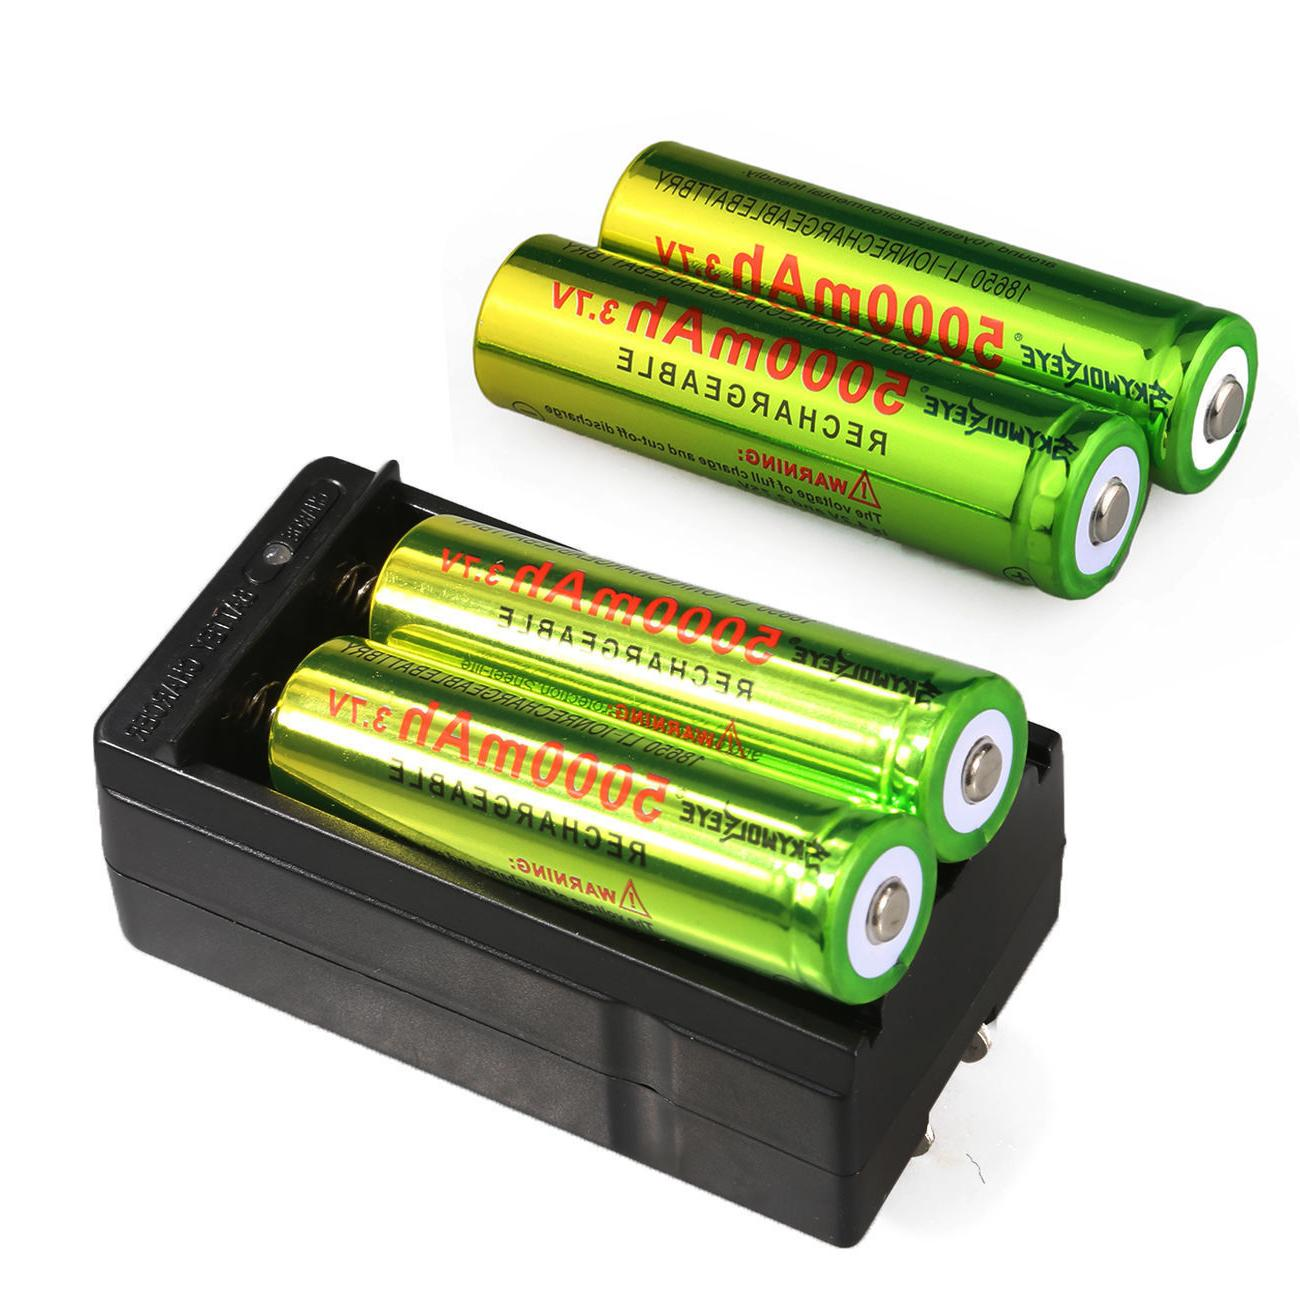 Skywolfeye 5000mAh 3.7V Li-ion Rechargeable For Torch